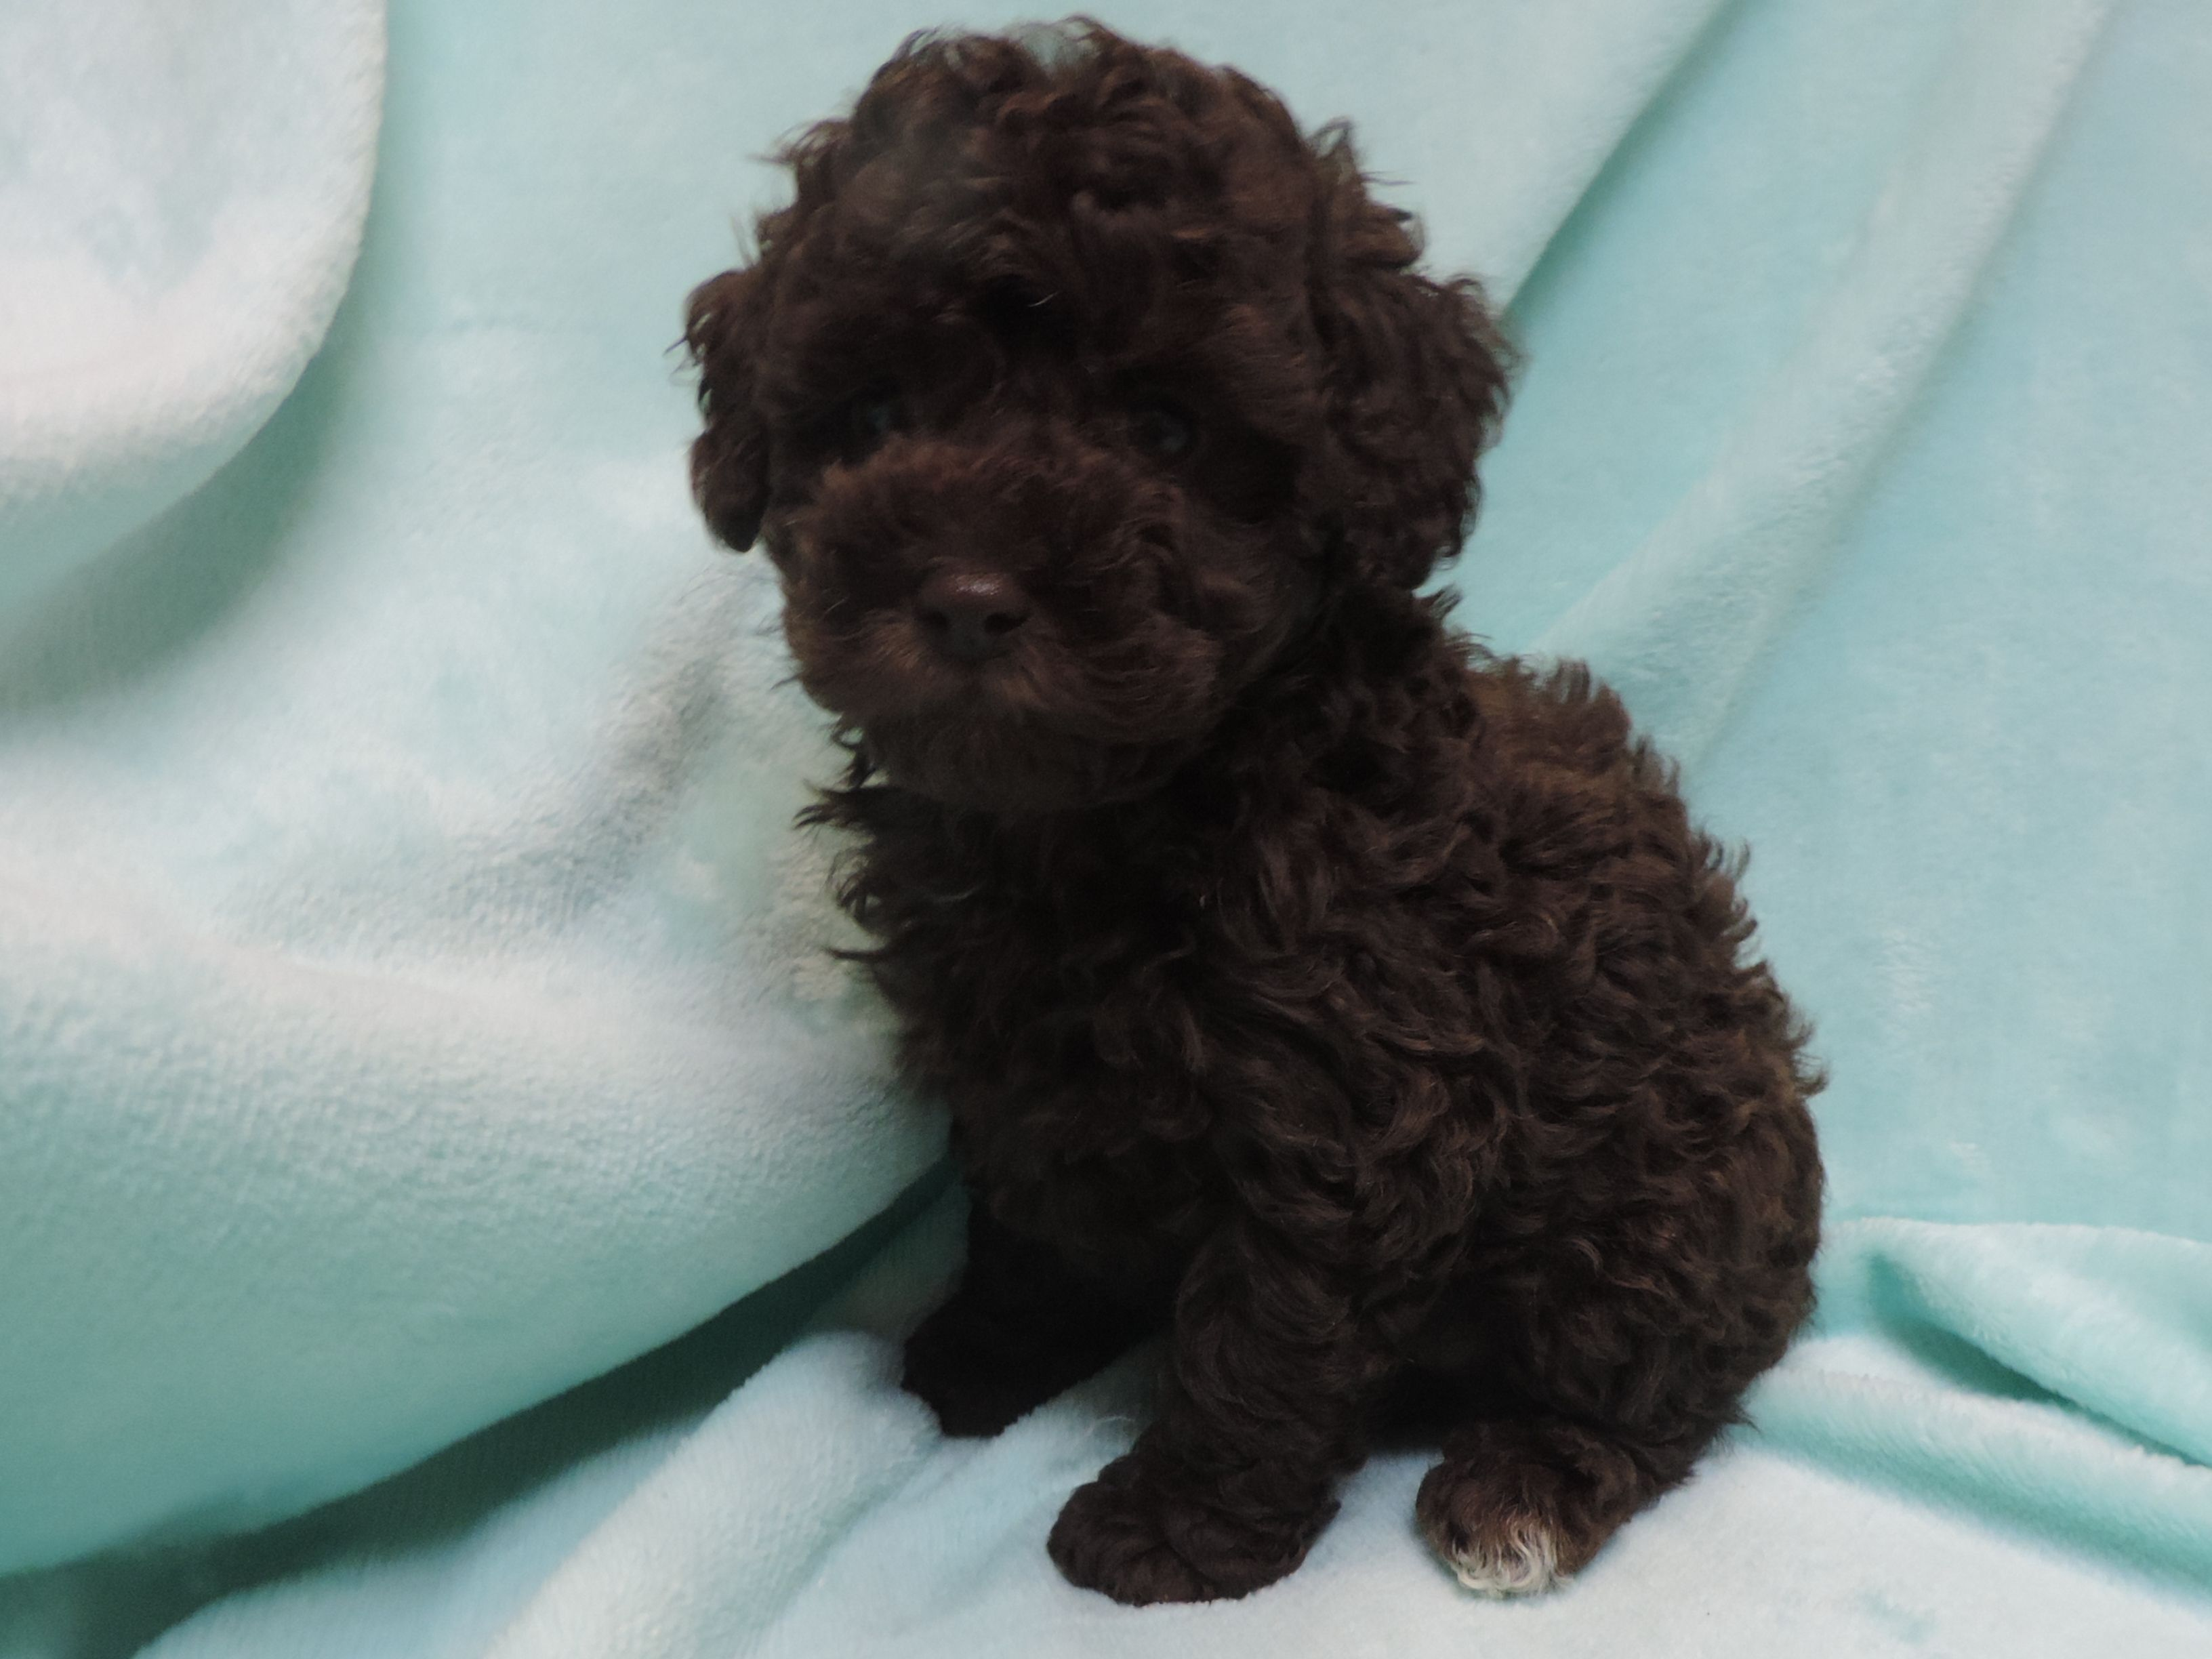 Shichon puppies for sale in kentucky - Collier Family Breeders Puppies For Sale In Louisville Kentucky Available To Ship Inside United States